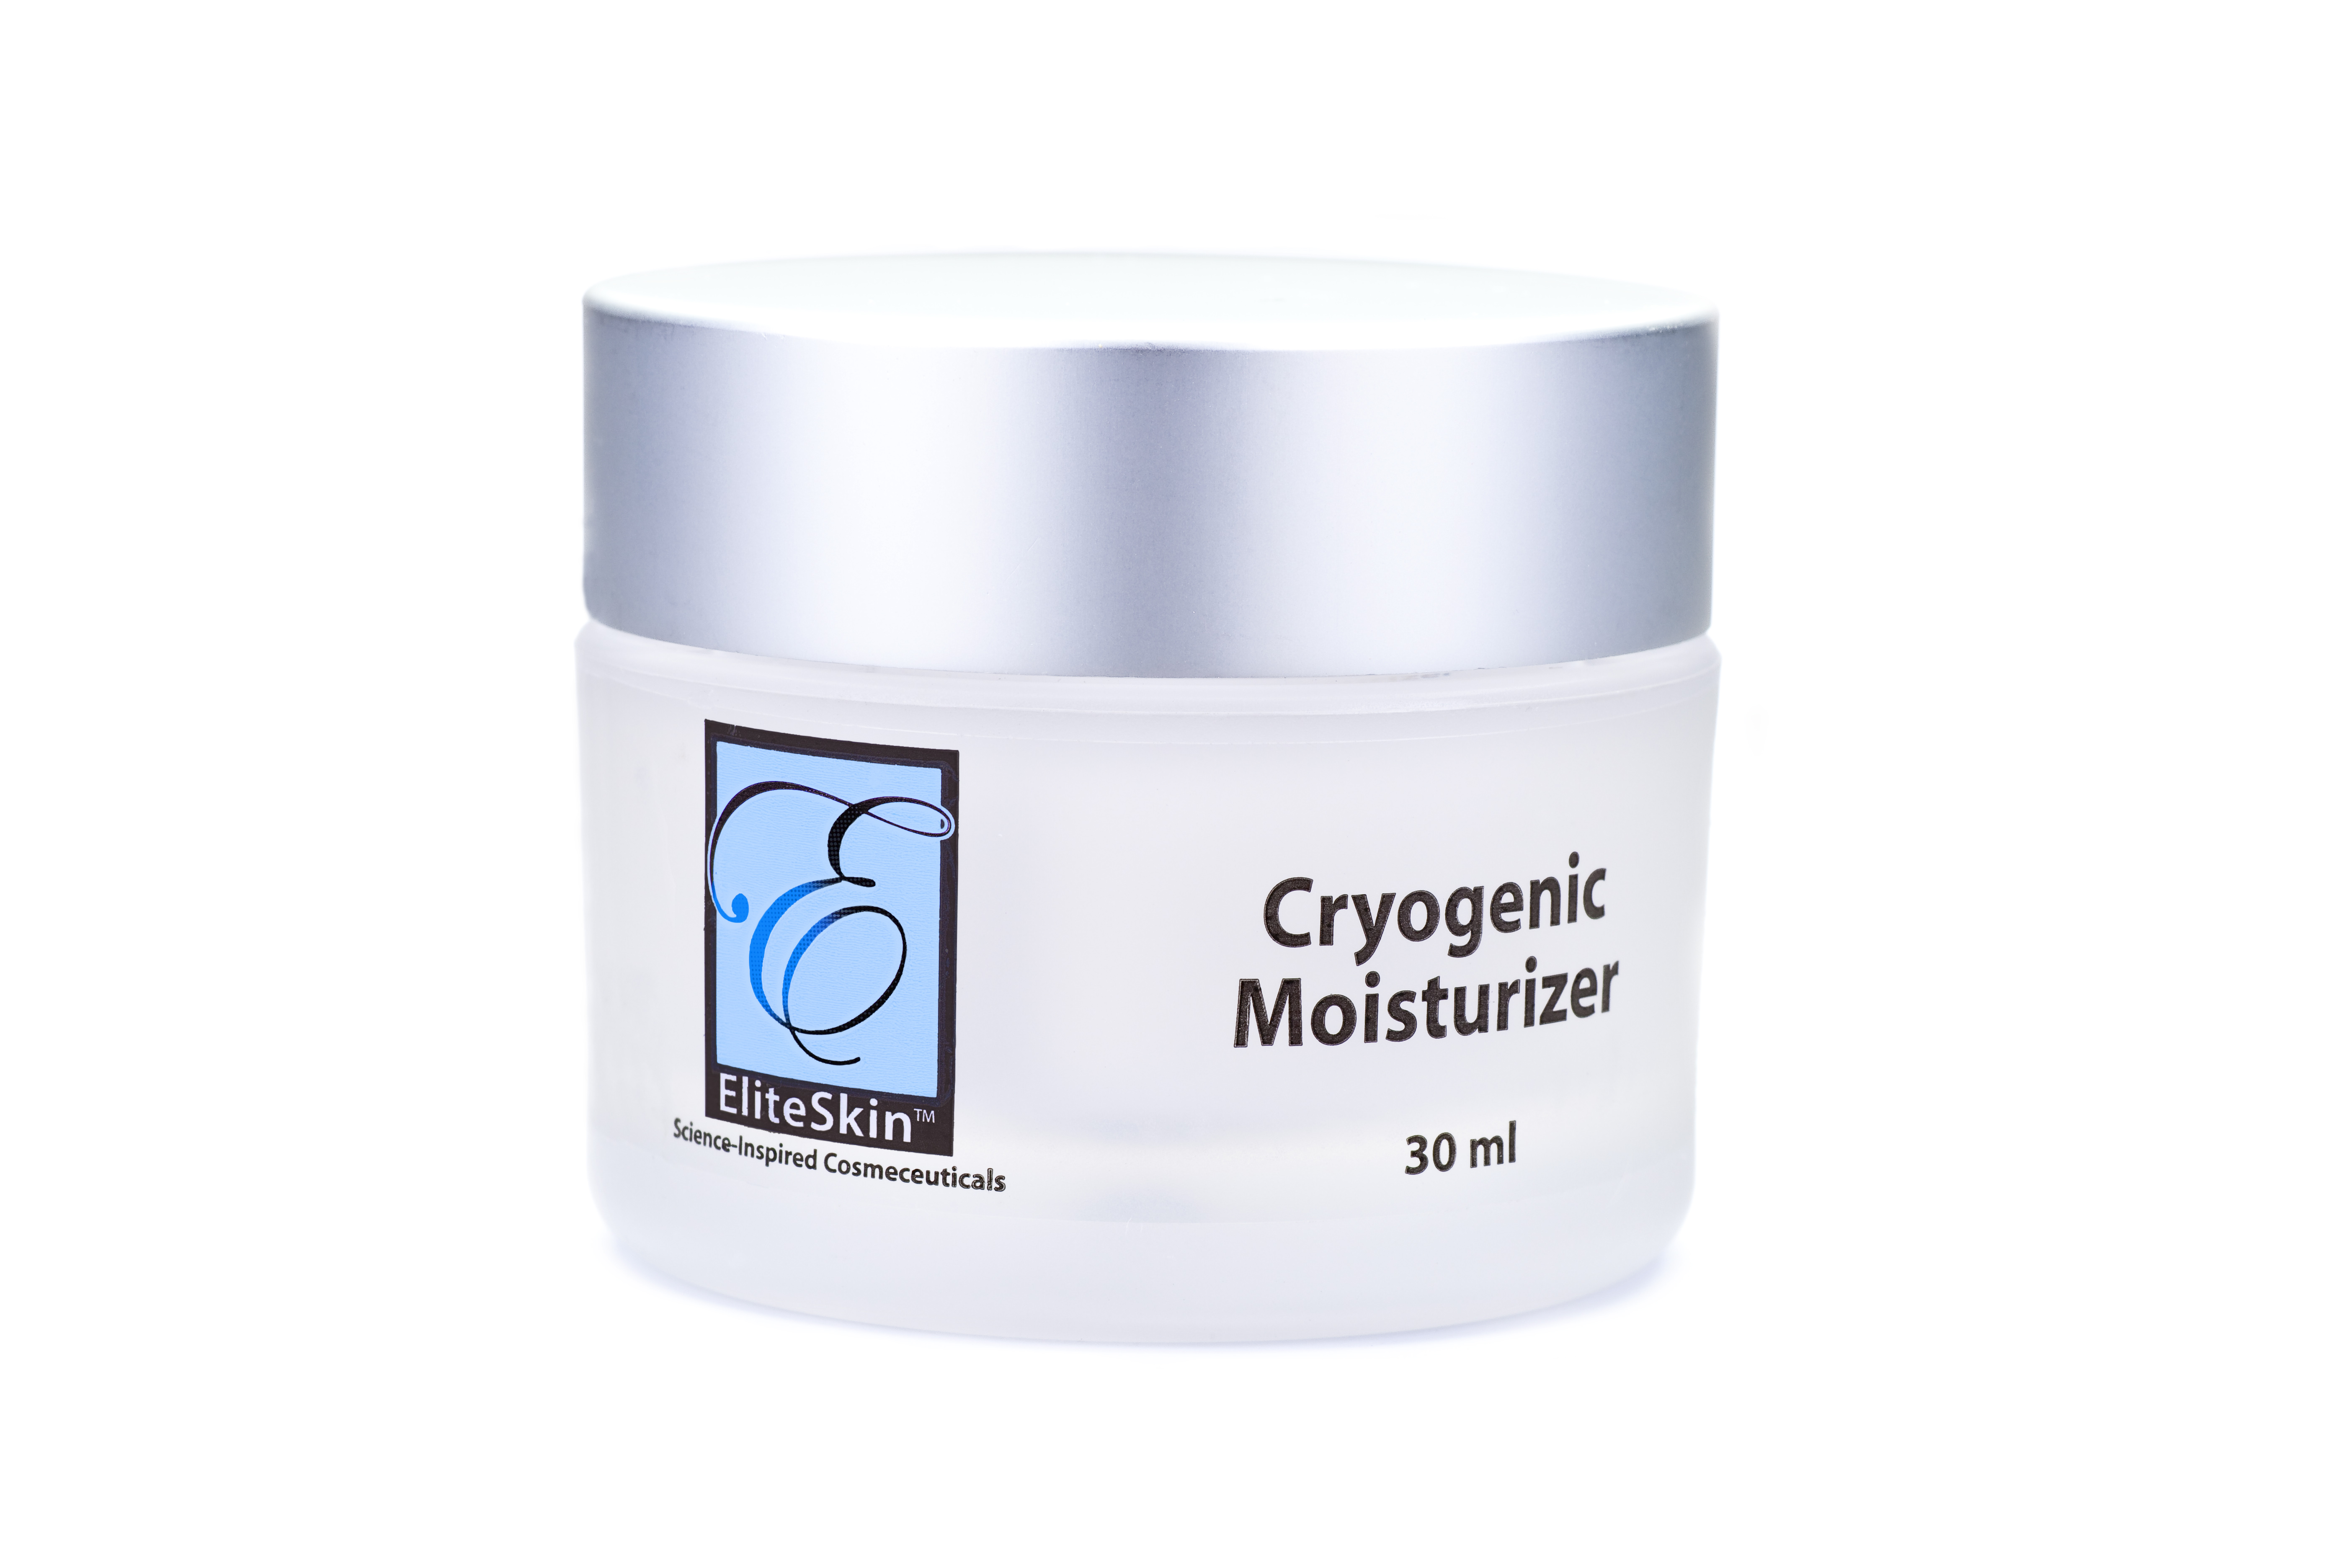 Cryogenic Moisturizer by EliteSkin